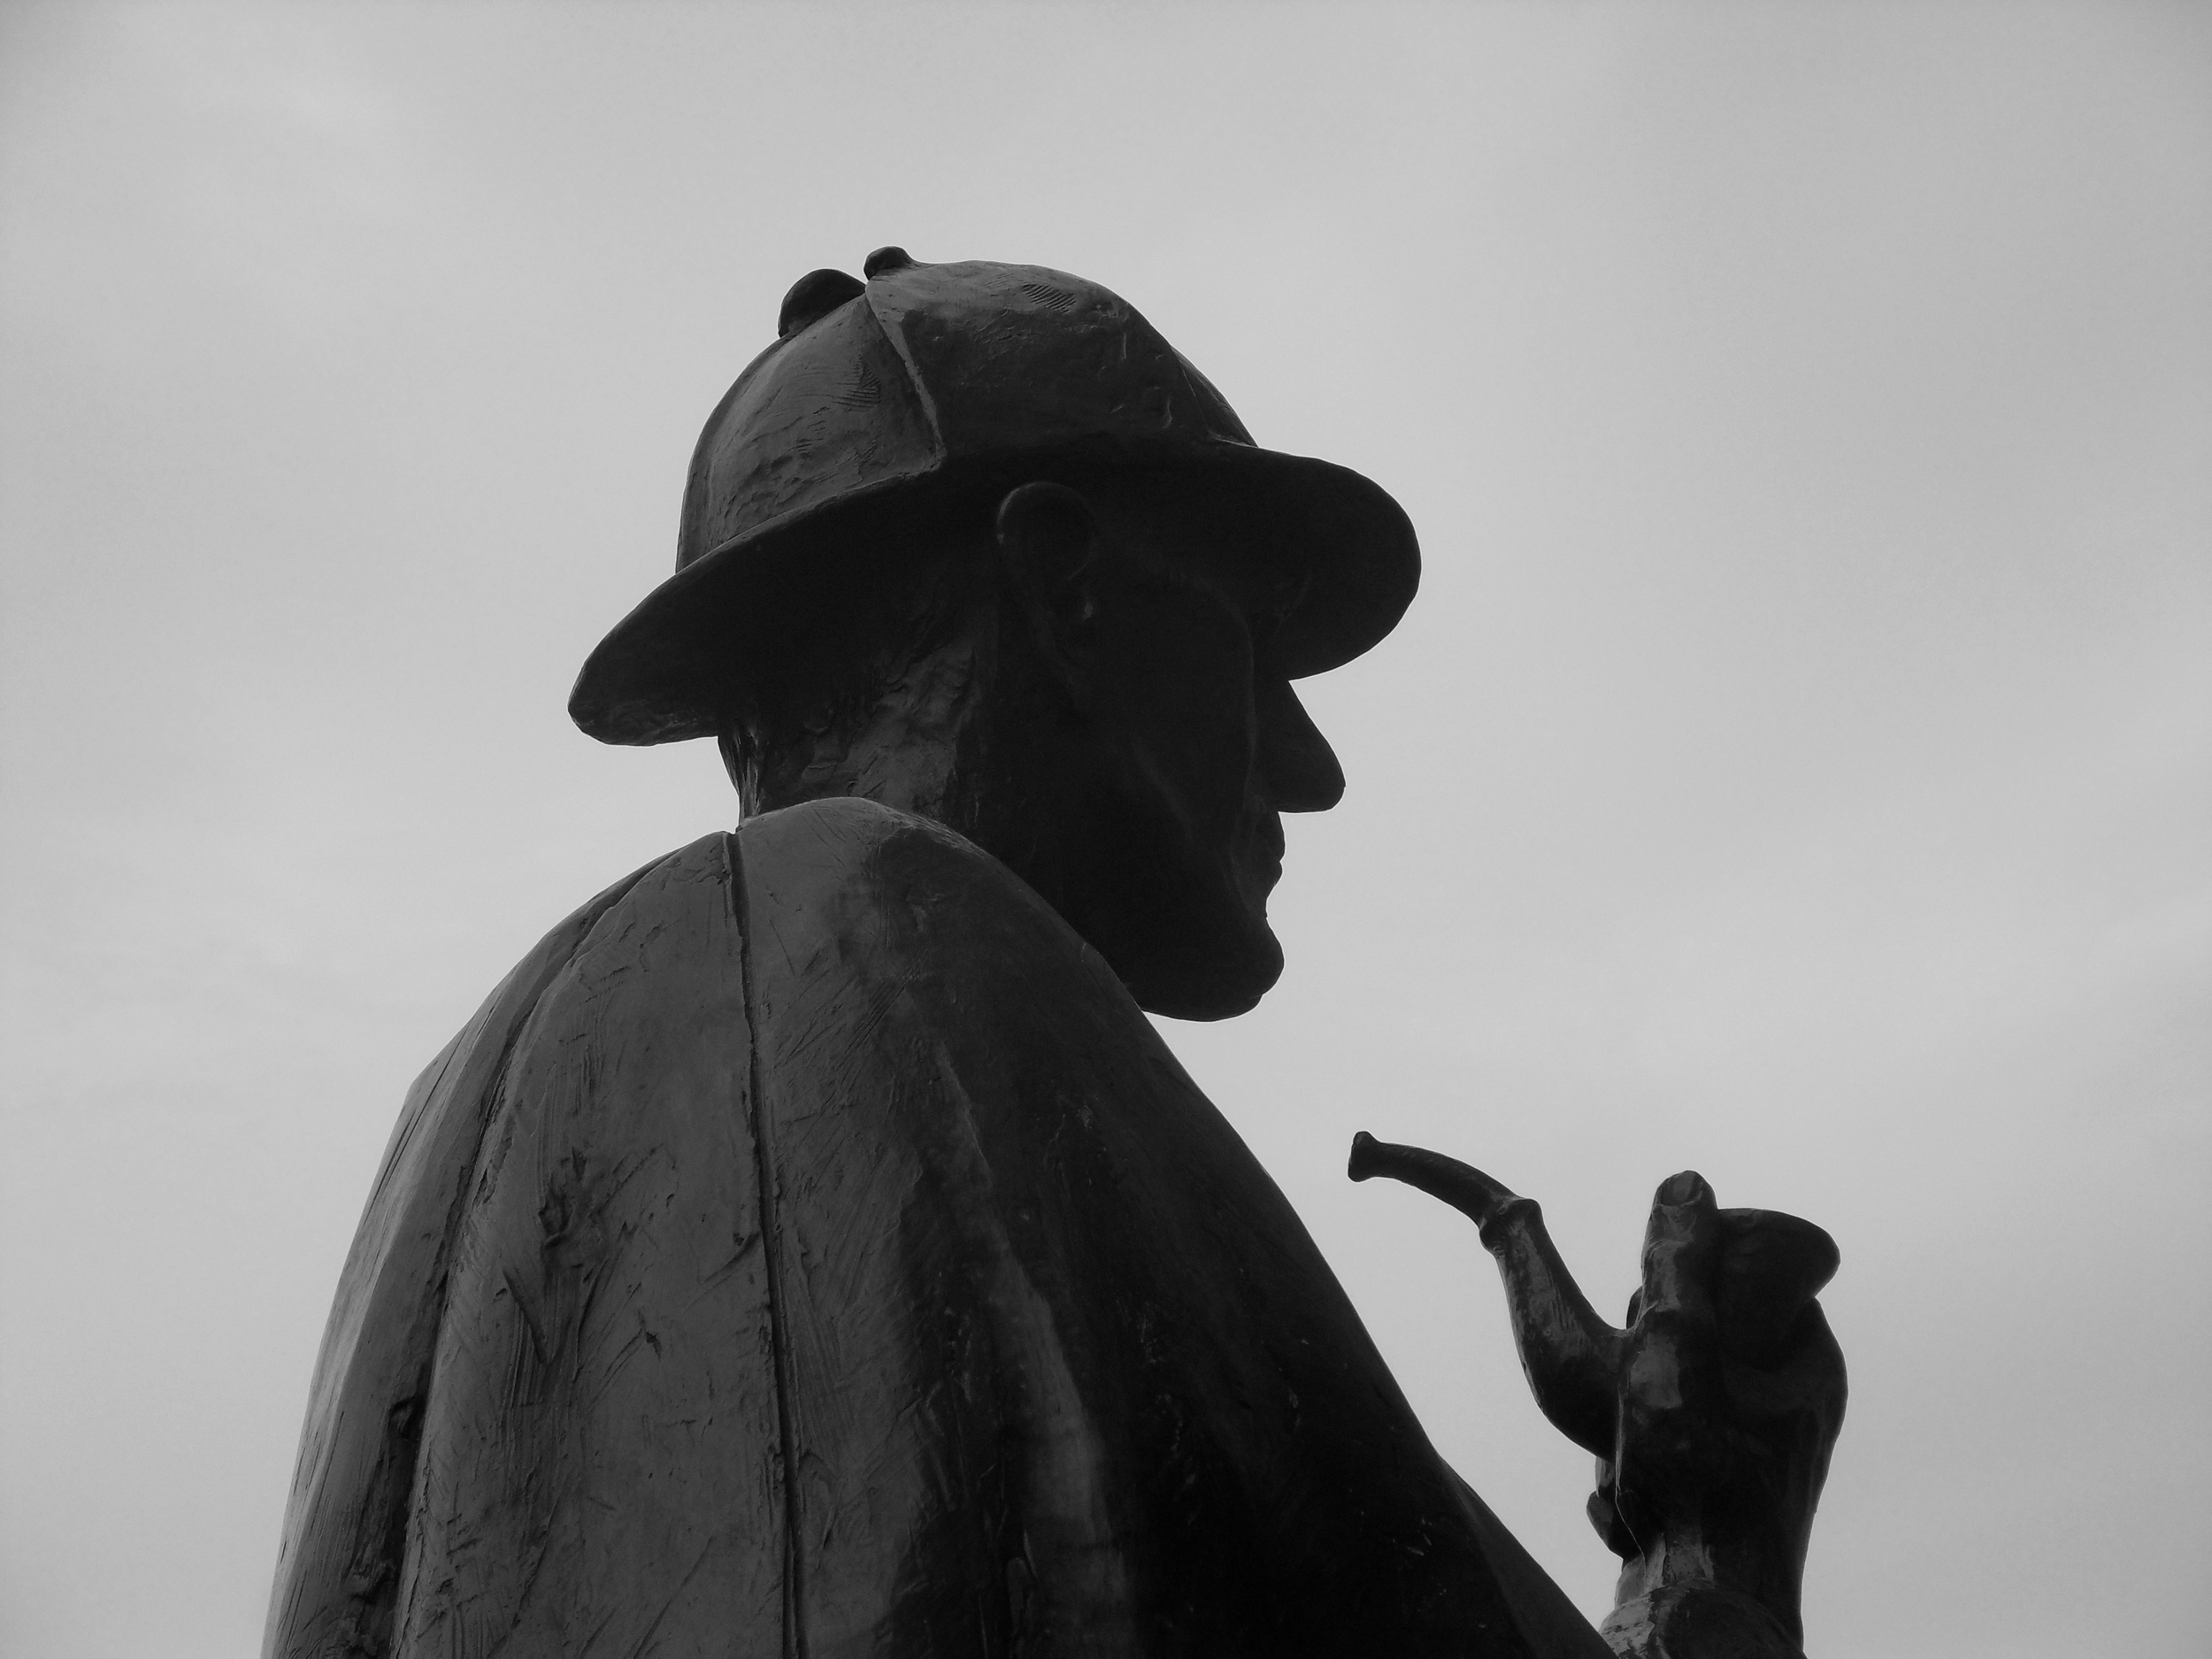 """""""Sherlock Holmes Statue"""" by Julian is licensed under  CC BY-ND 2.0"""